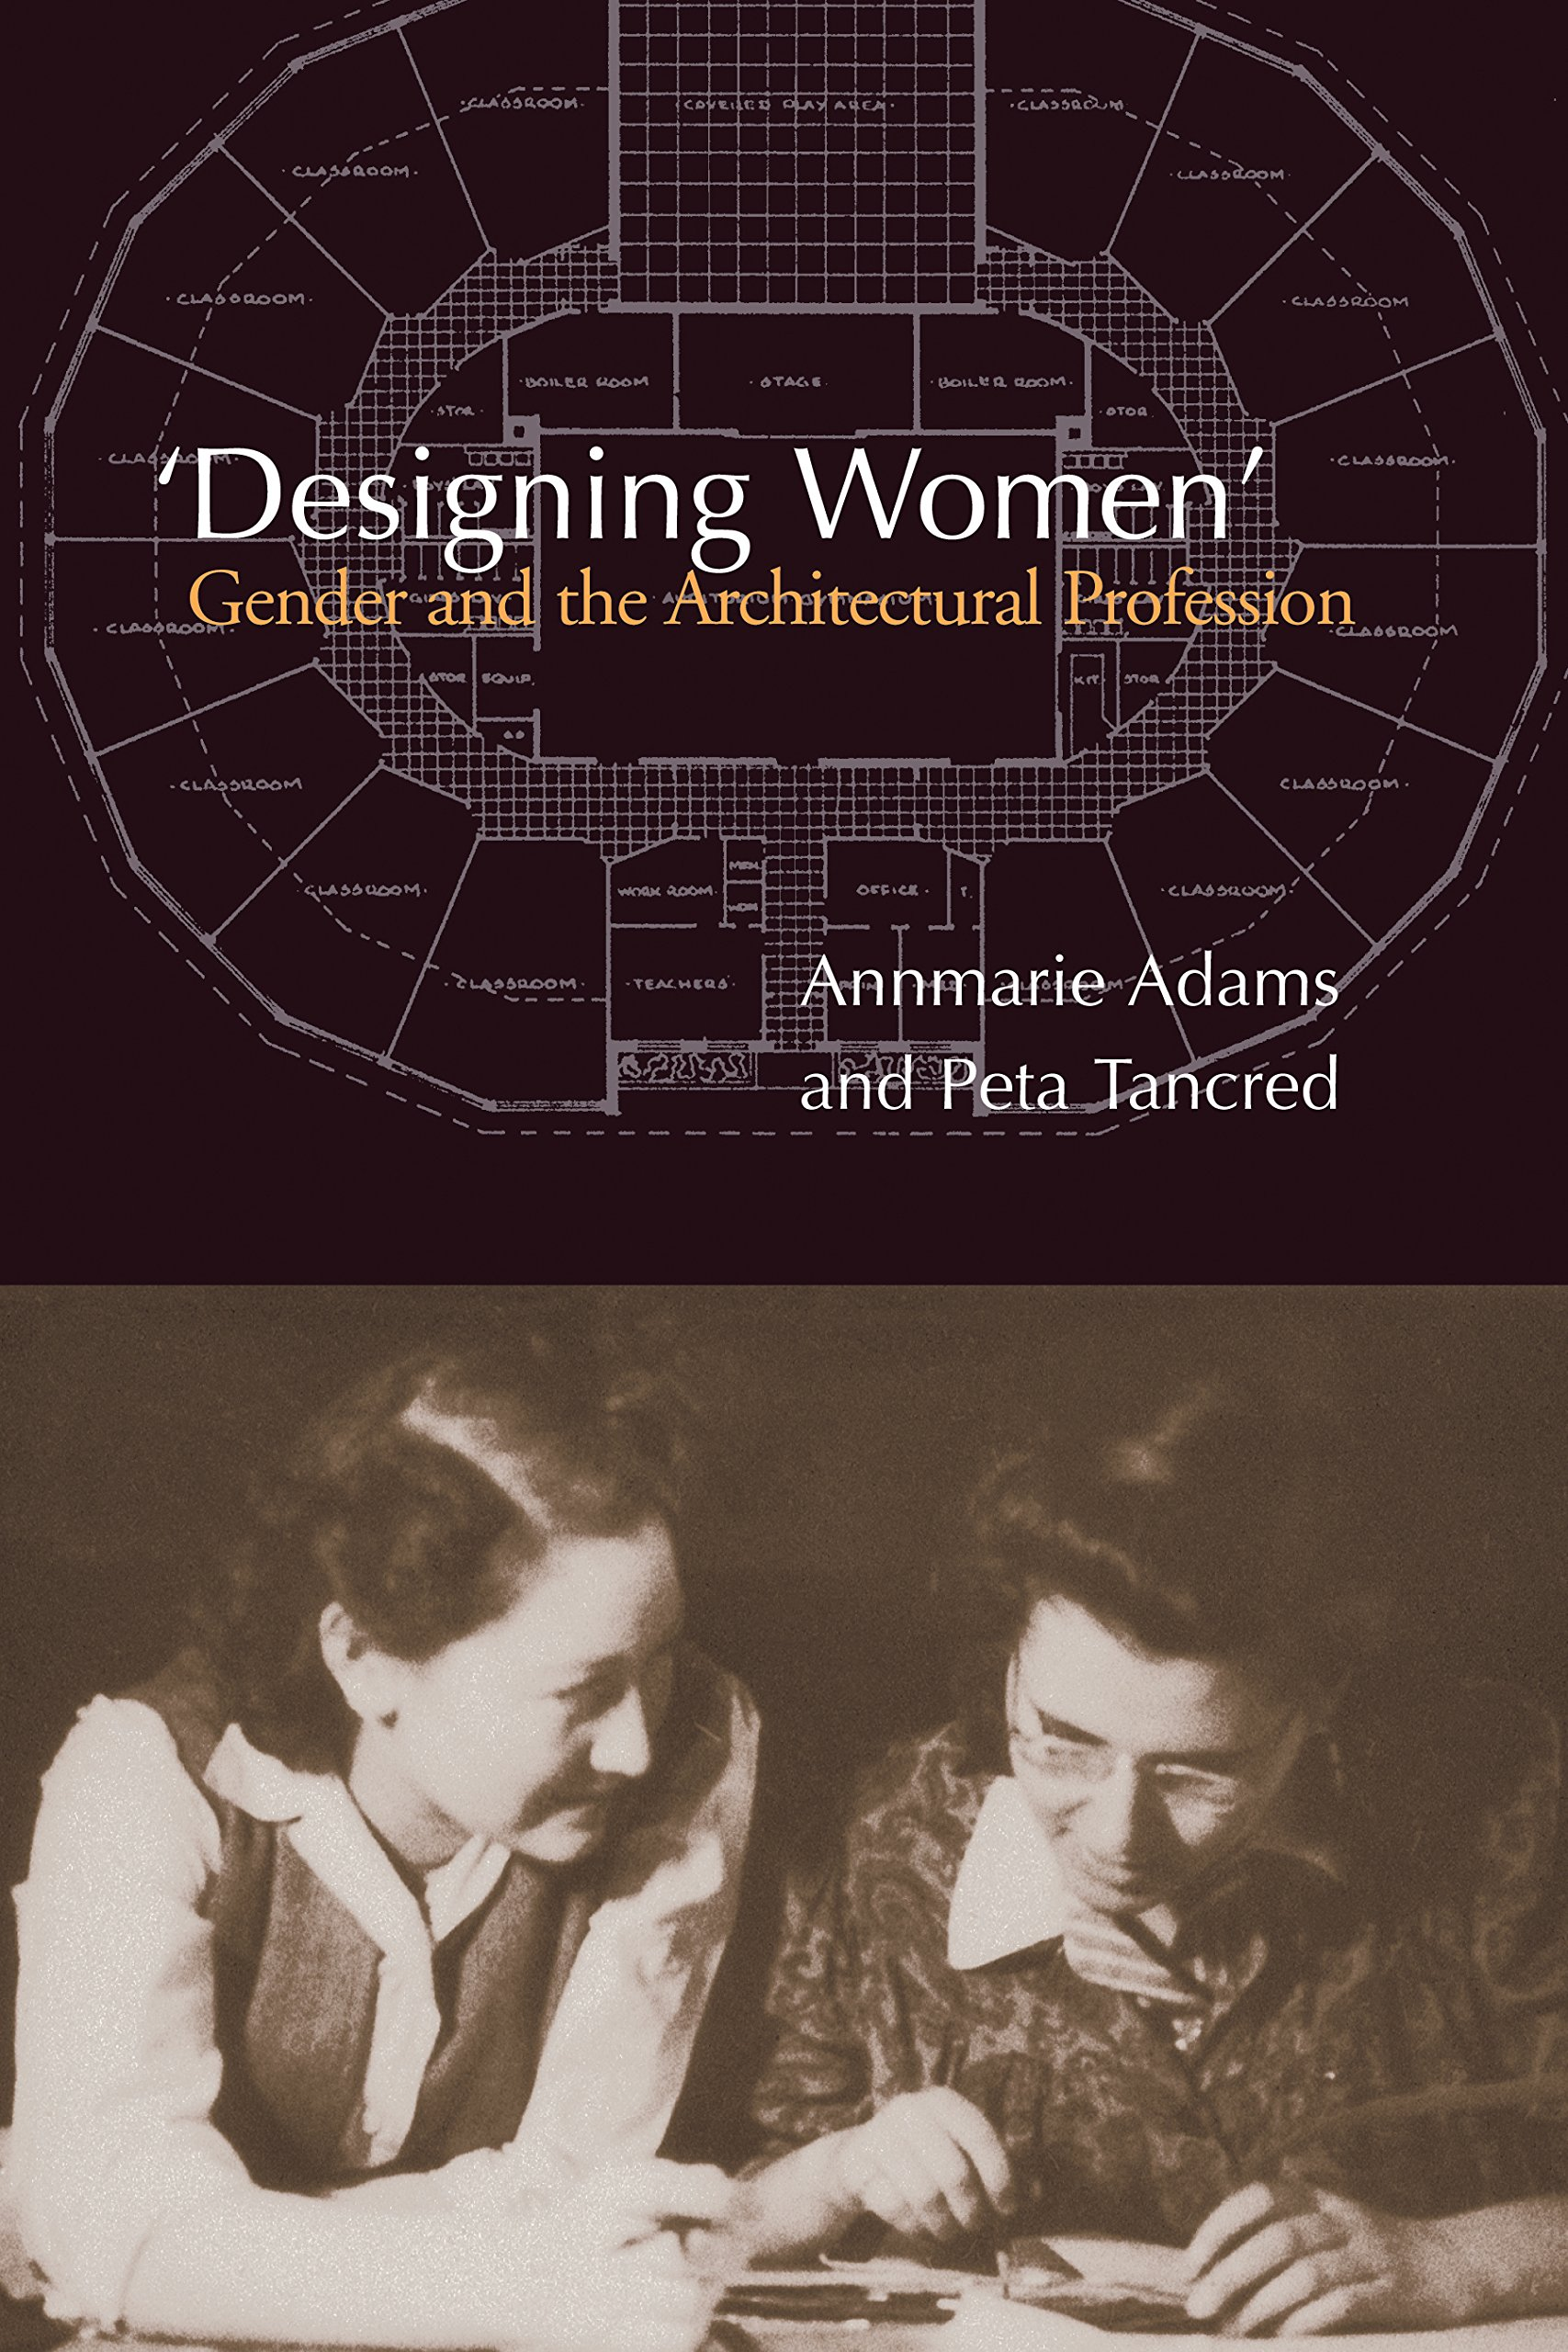 'Designing Women': Gender and the Architectural Profession (Heritage)